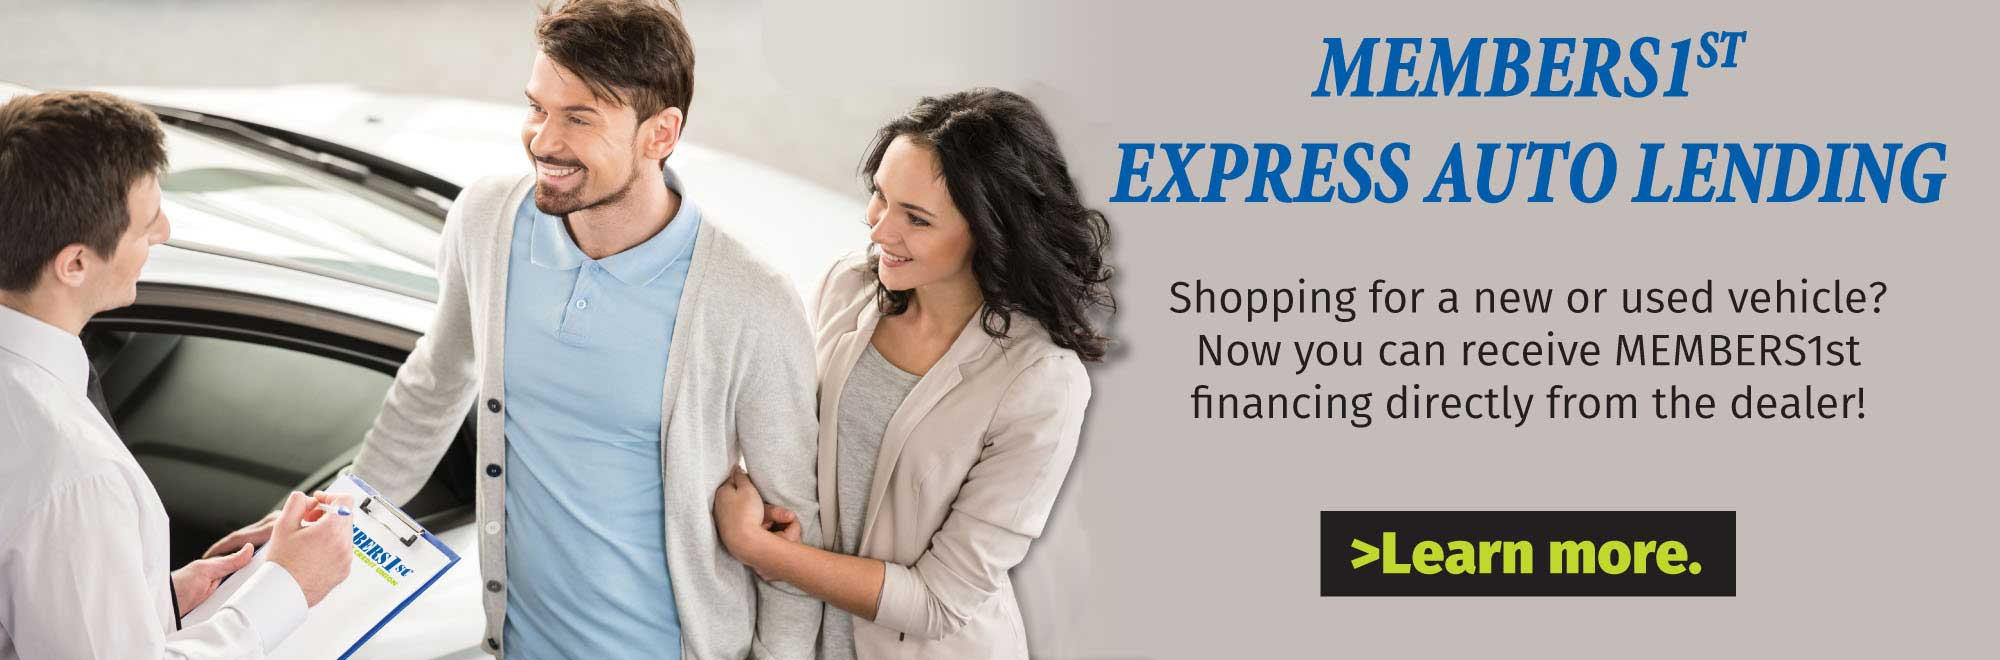 With our Express Auto Lending service, you can get a members first loan directly from a list of partner dealerships.